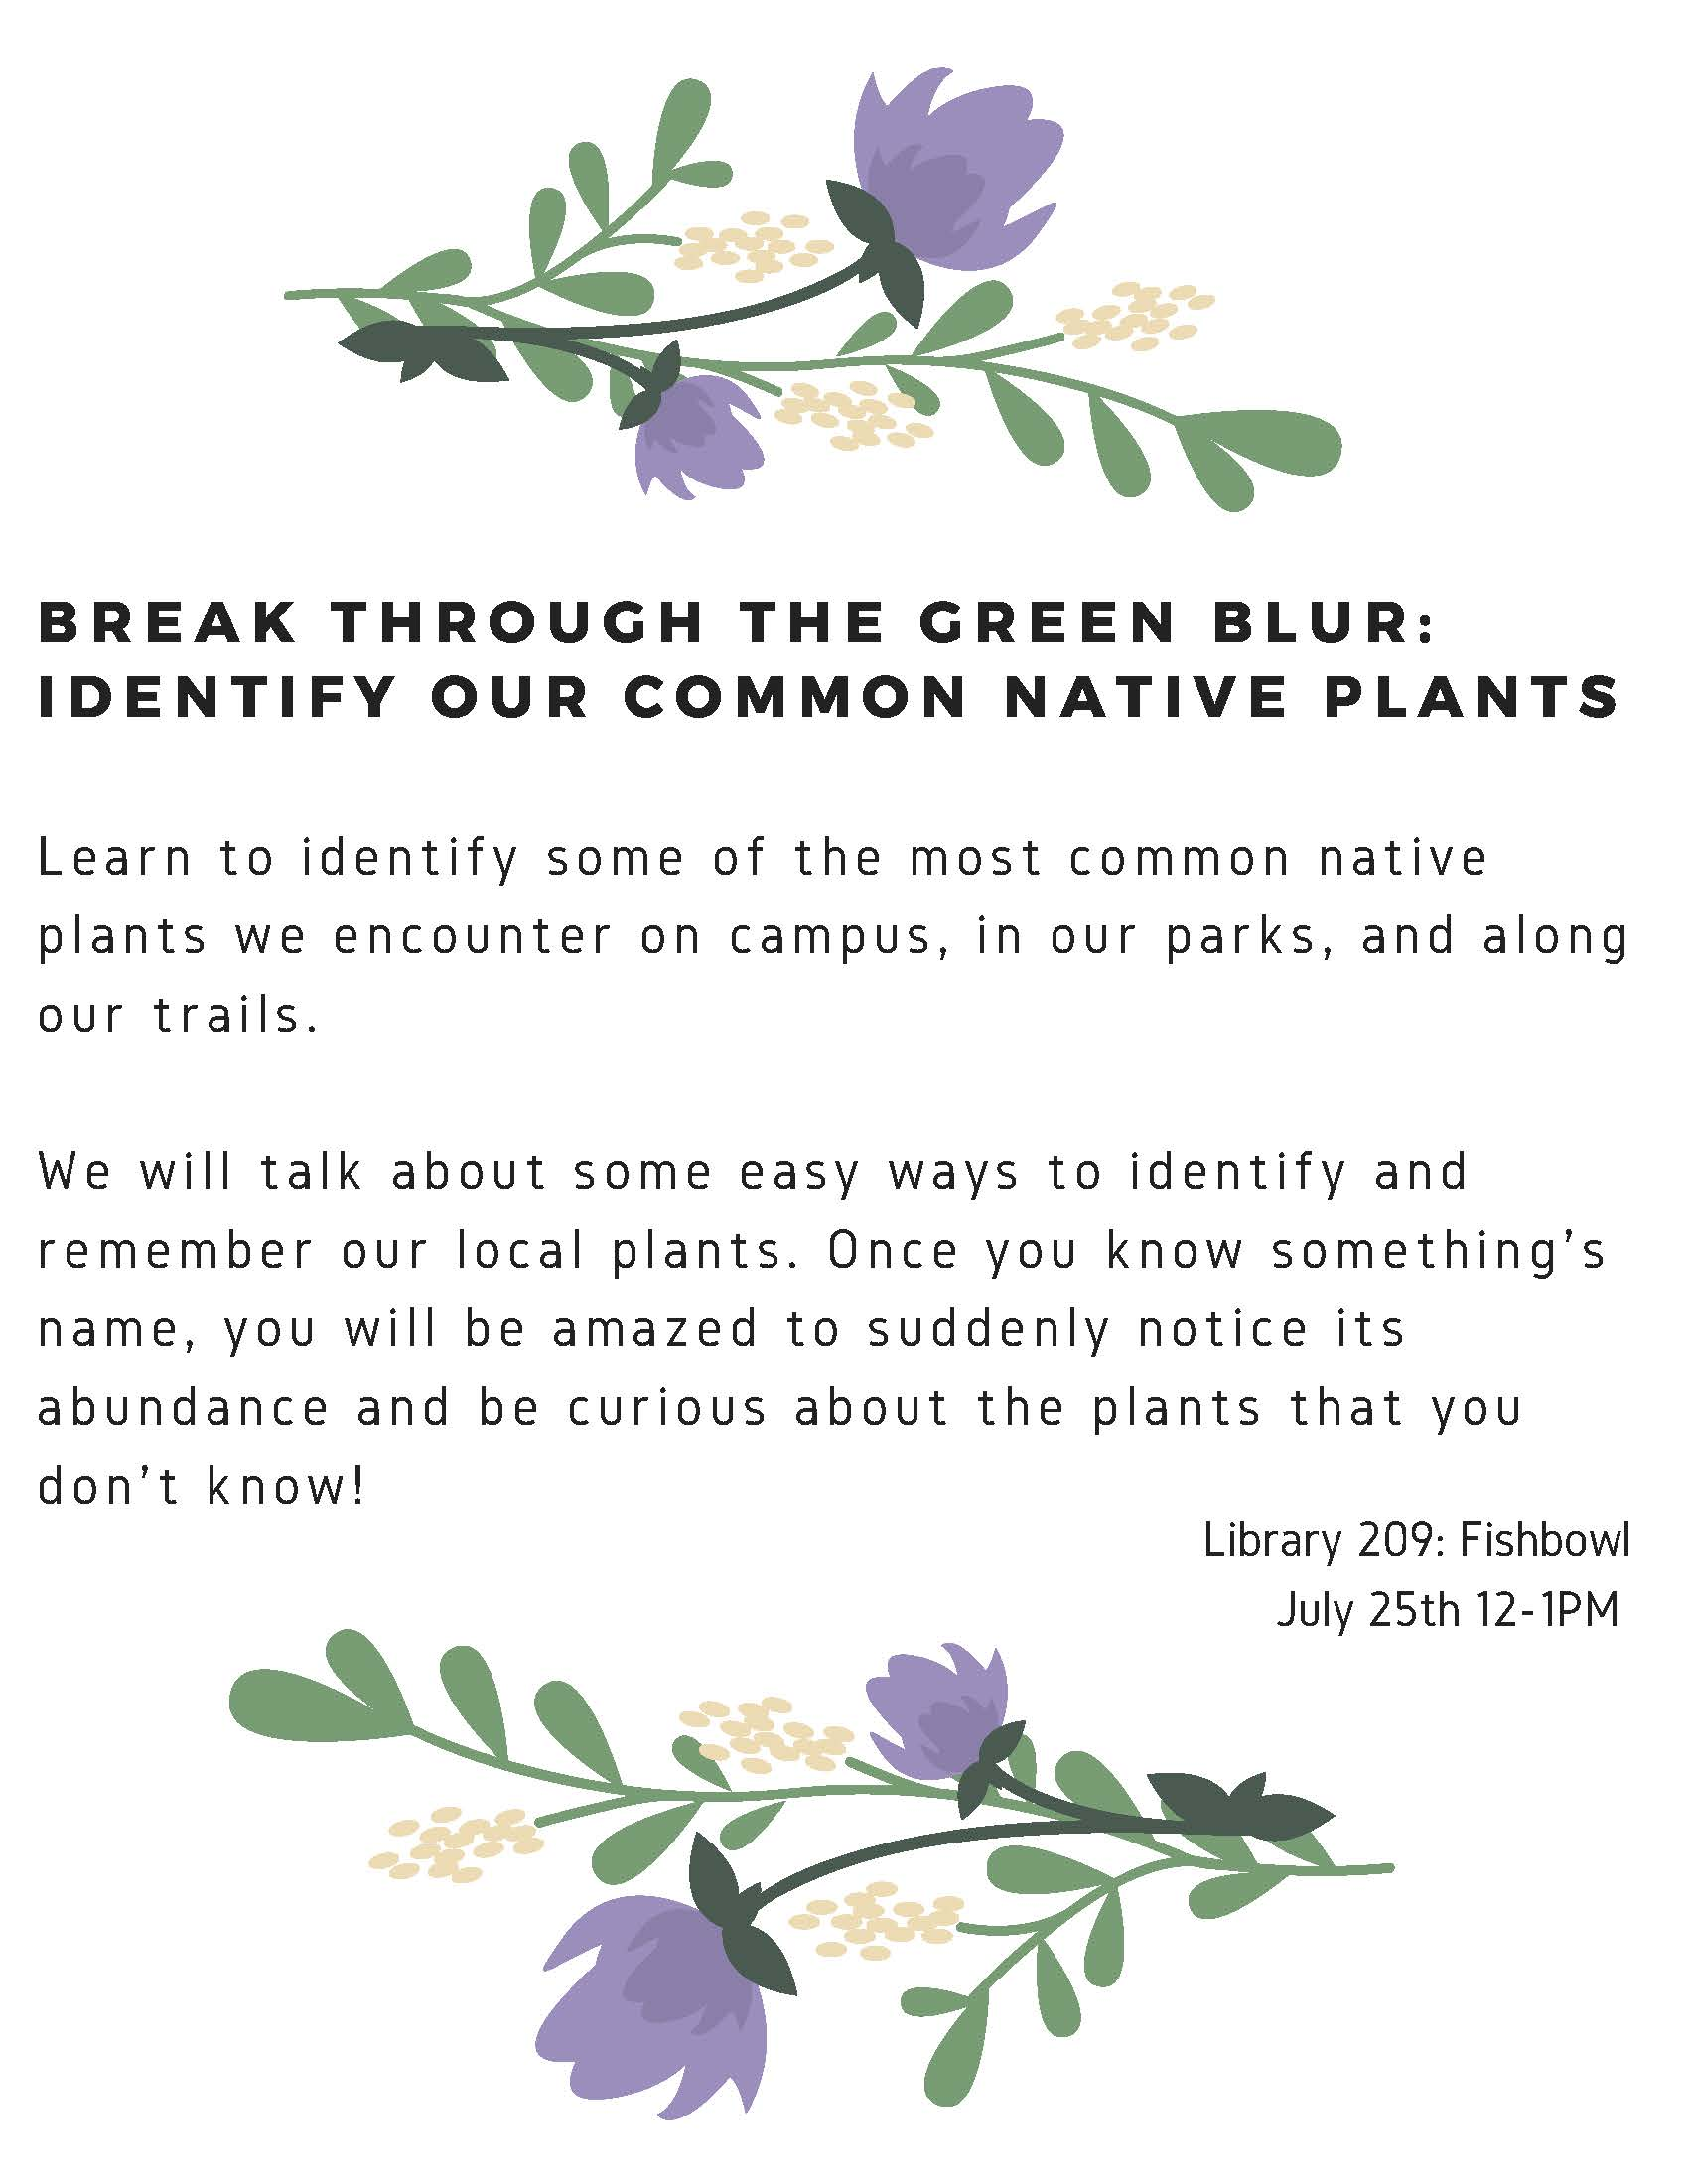 Break through the green blur: identify our common native plants